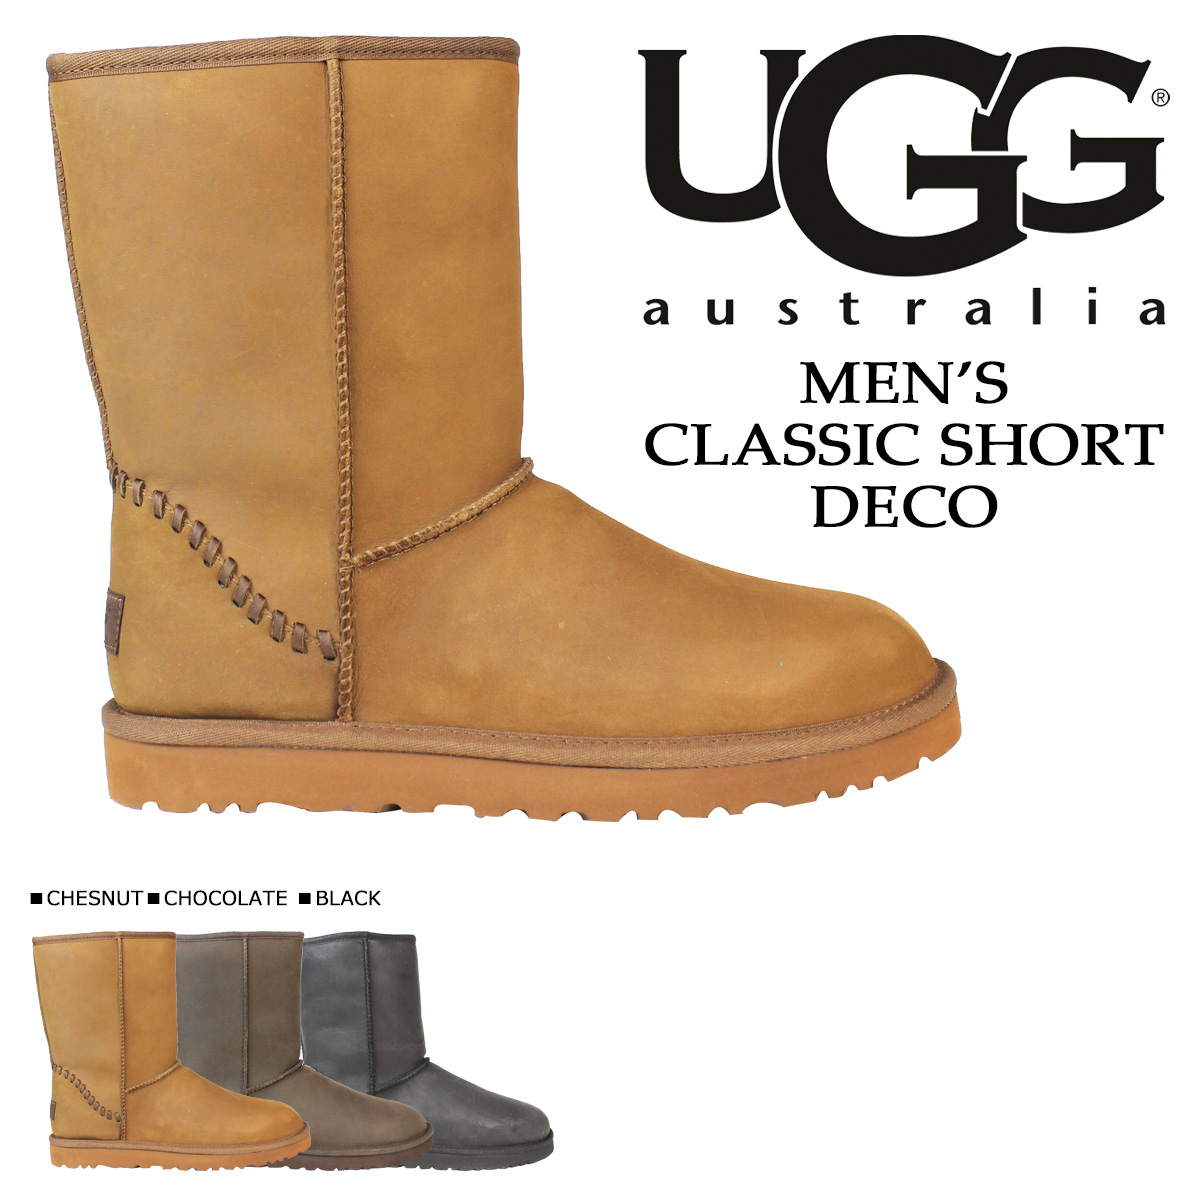 Sheepskin Boots Classic short, UGG UGG men's MENS CLASSIC SHORT DECO Deco 1007307 3 colors [12 / 2 new in stock]